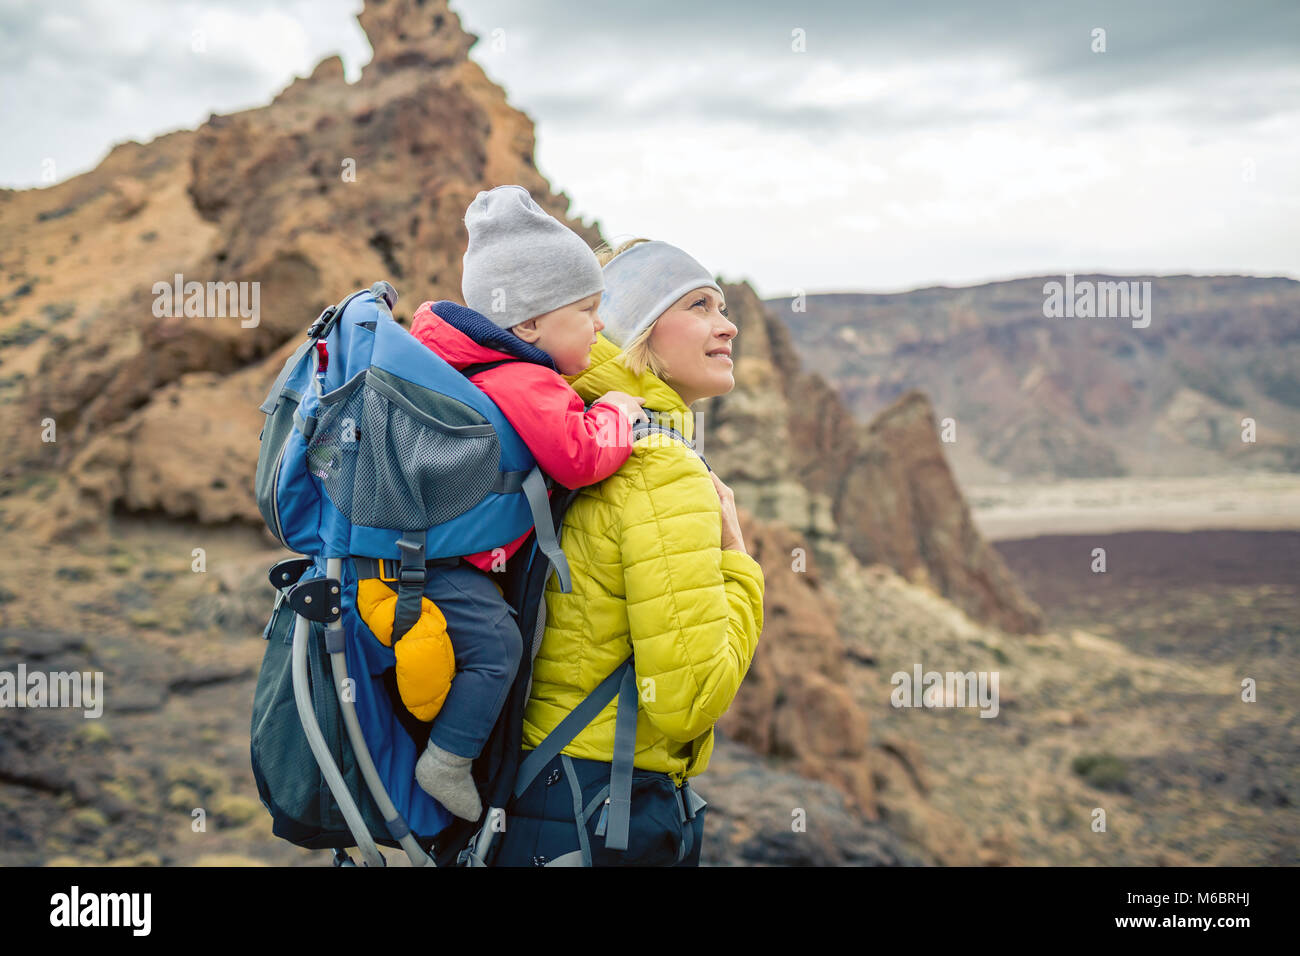 Family hike baby boy travelling in mother's backpack. Hiking adventure with child on autumn family trip in mountains. - Stock Image